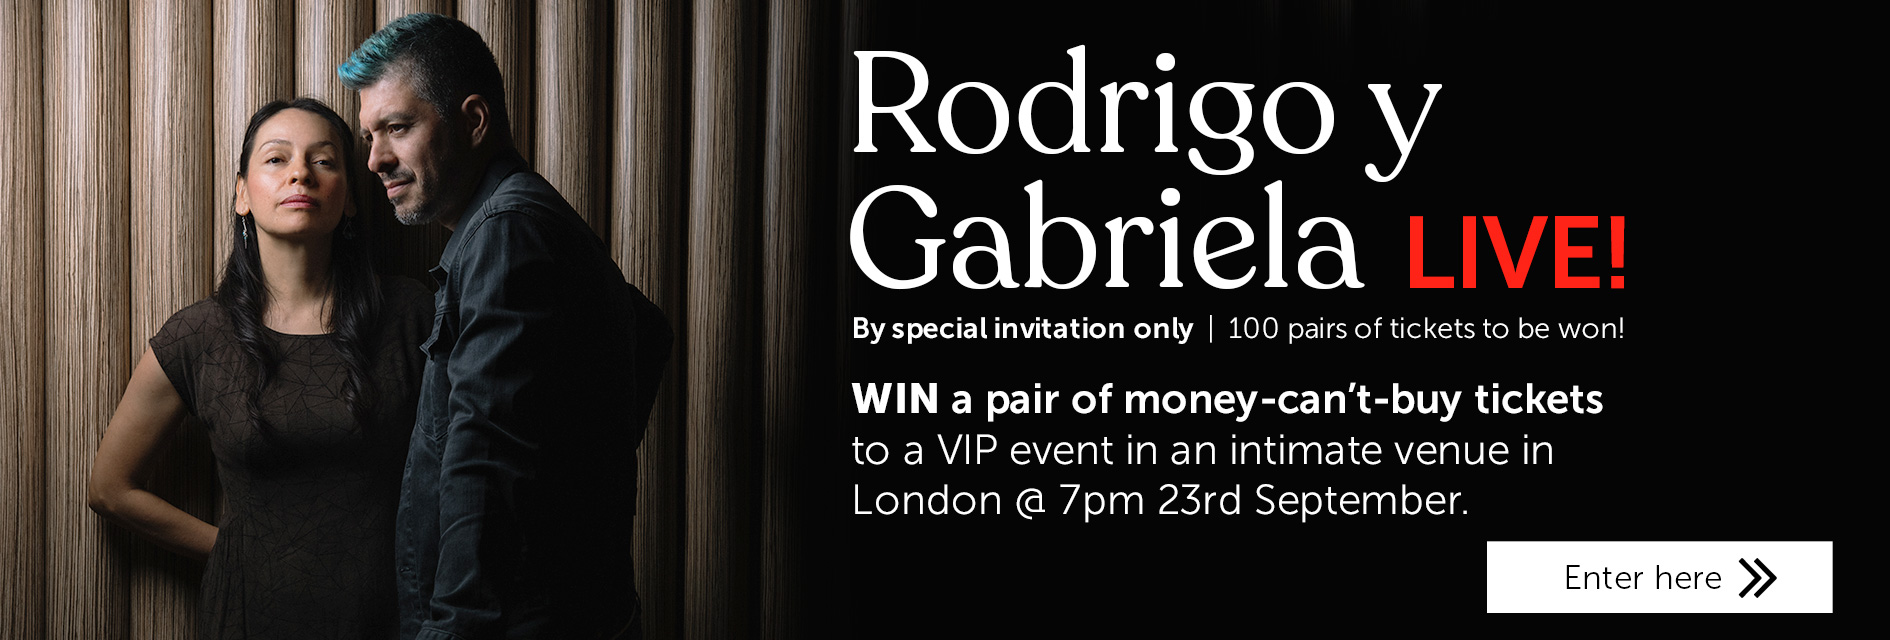 Win tickets to see Rodrigo y Gabriela live